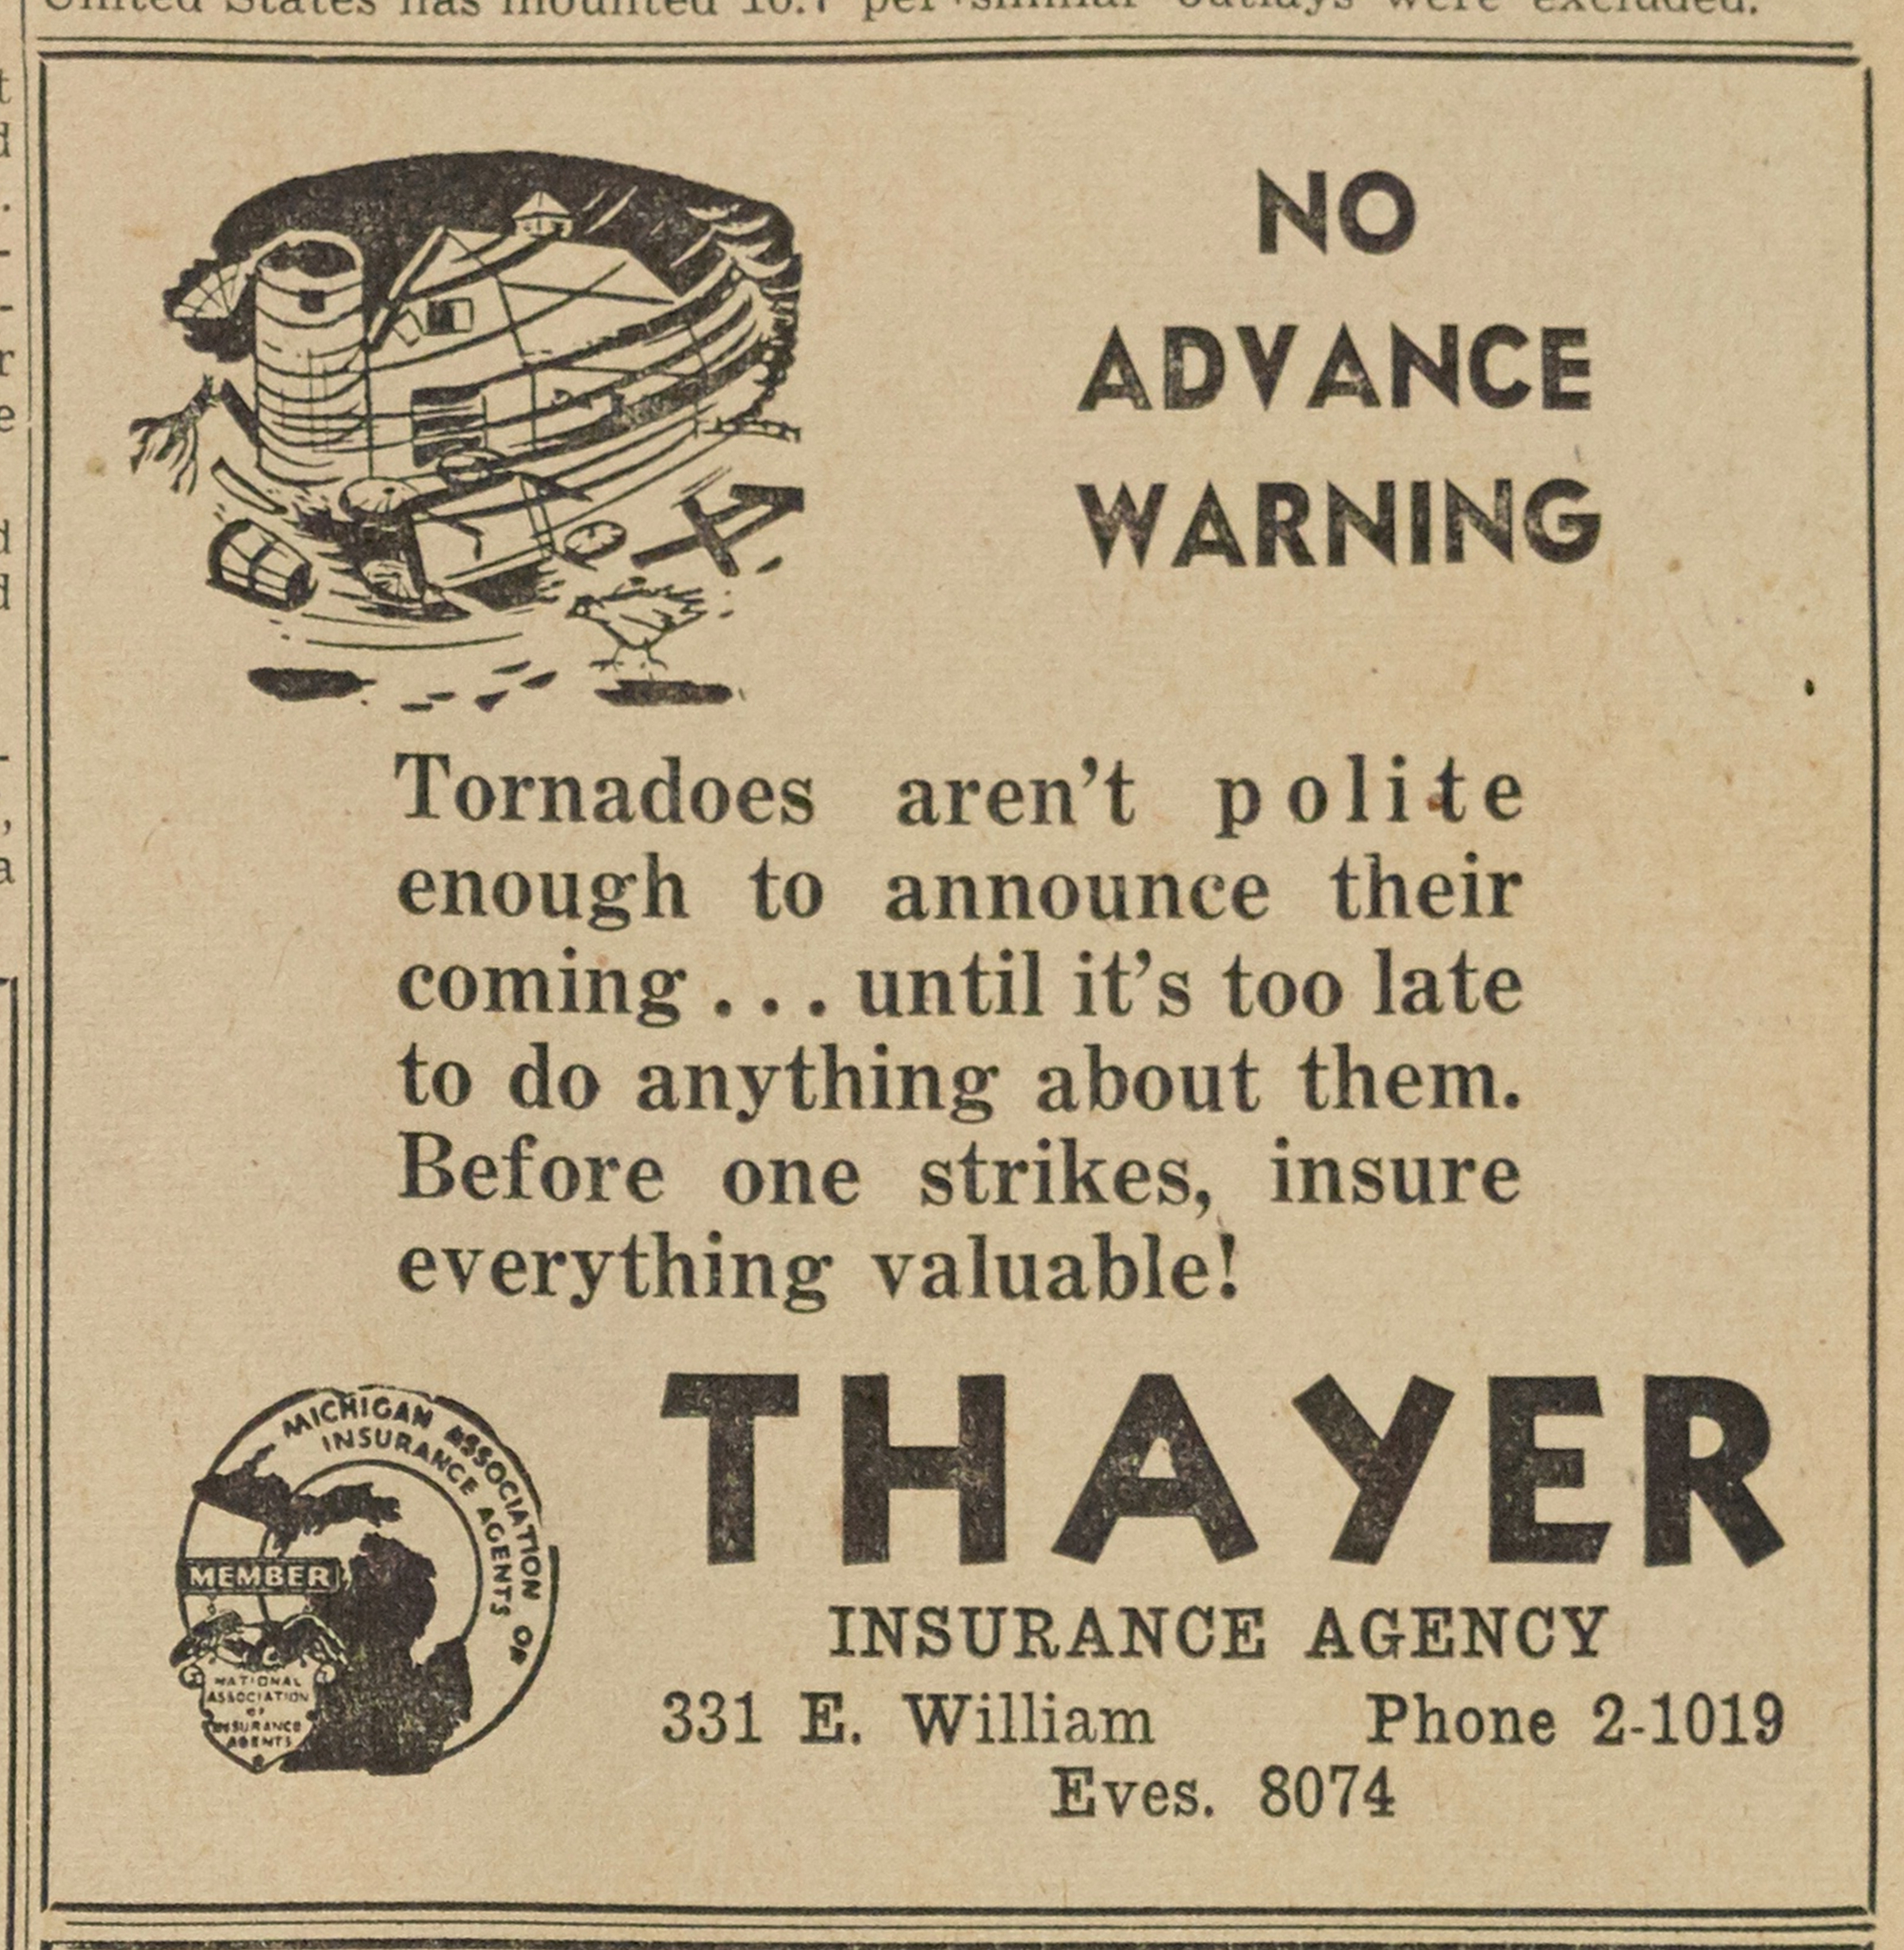 Thayer Insurance image